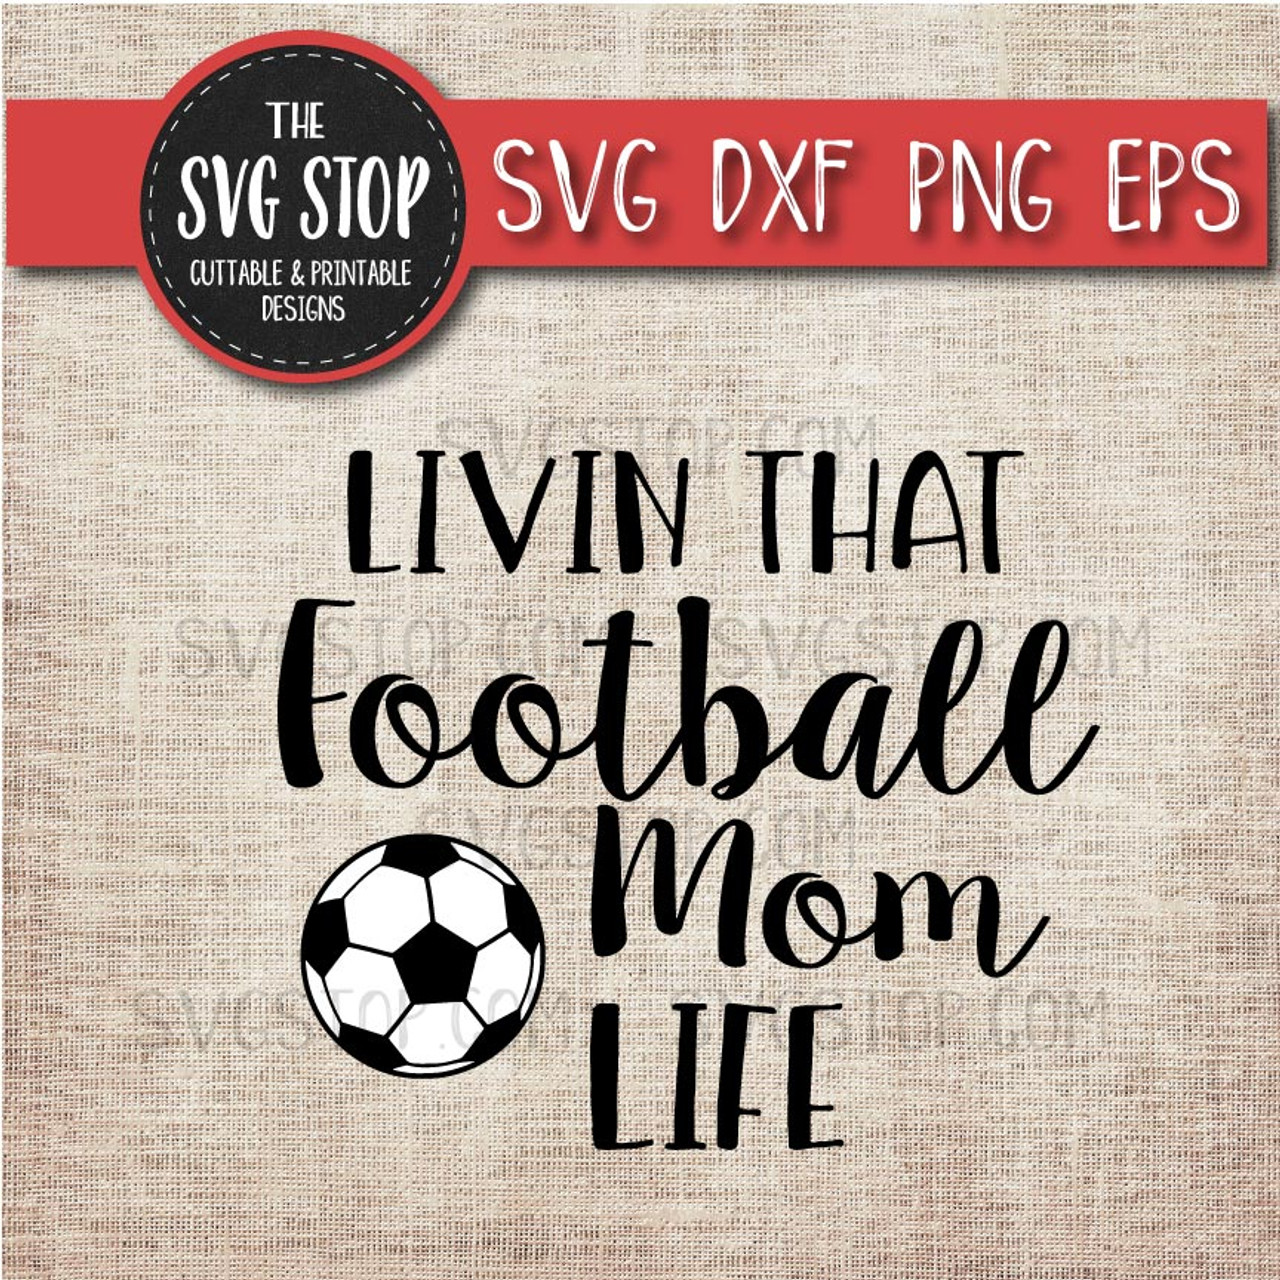 Livin That Football Soccer Mom Life Svg Cut File Clipart The Svg Stop